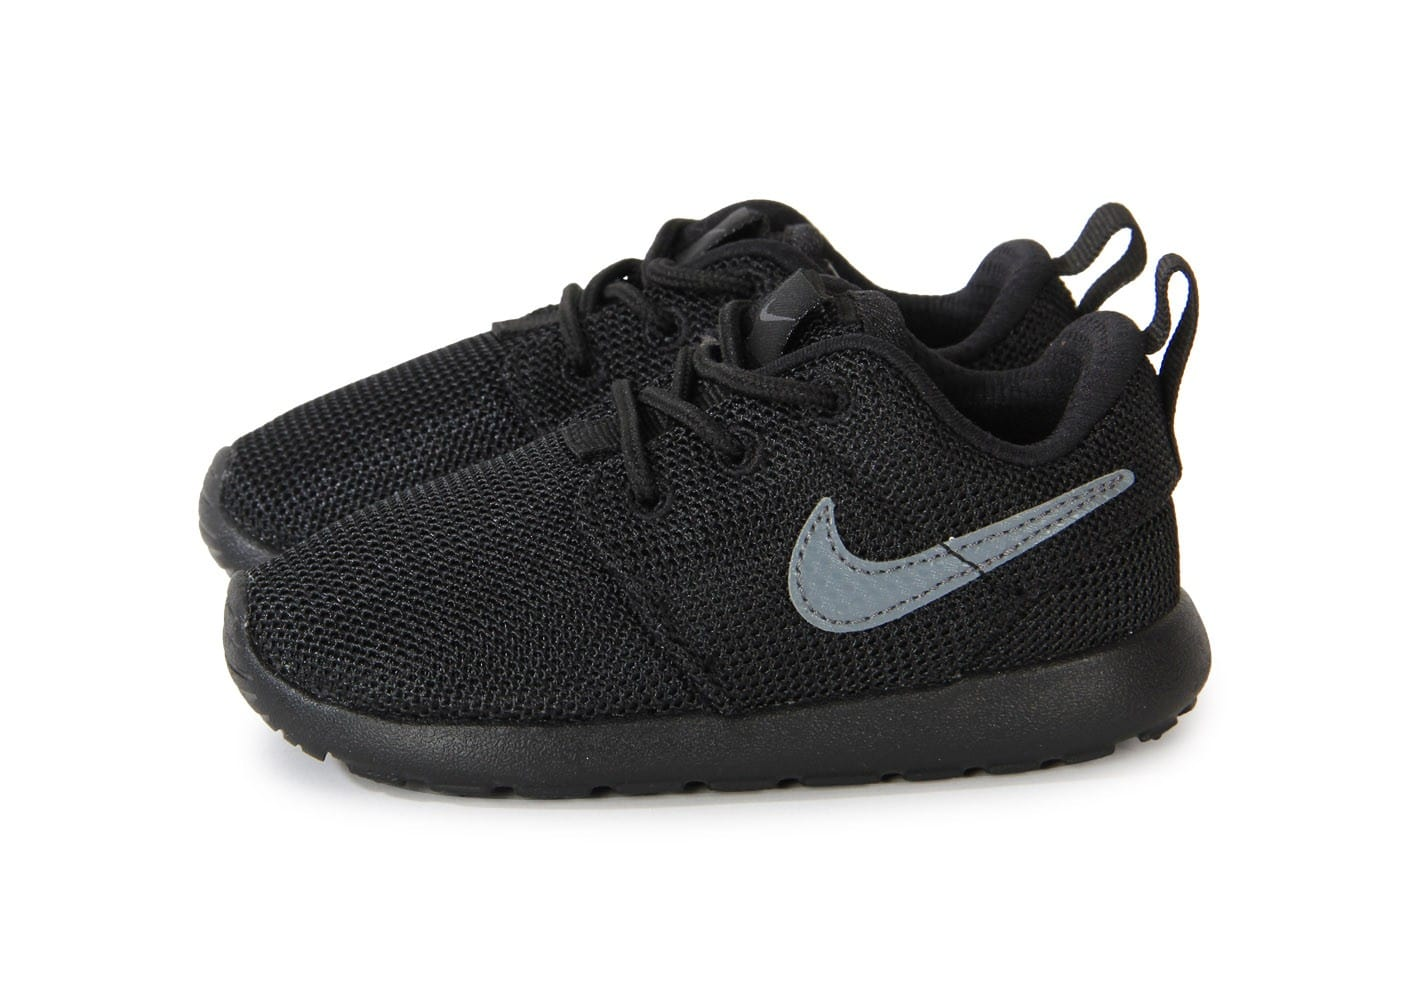 shades of san francisco pre order Nike Roshe One Bébé Noire - Chaussures Chaussures - Chausport